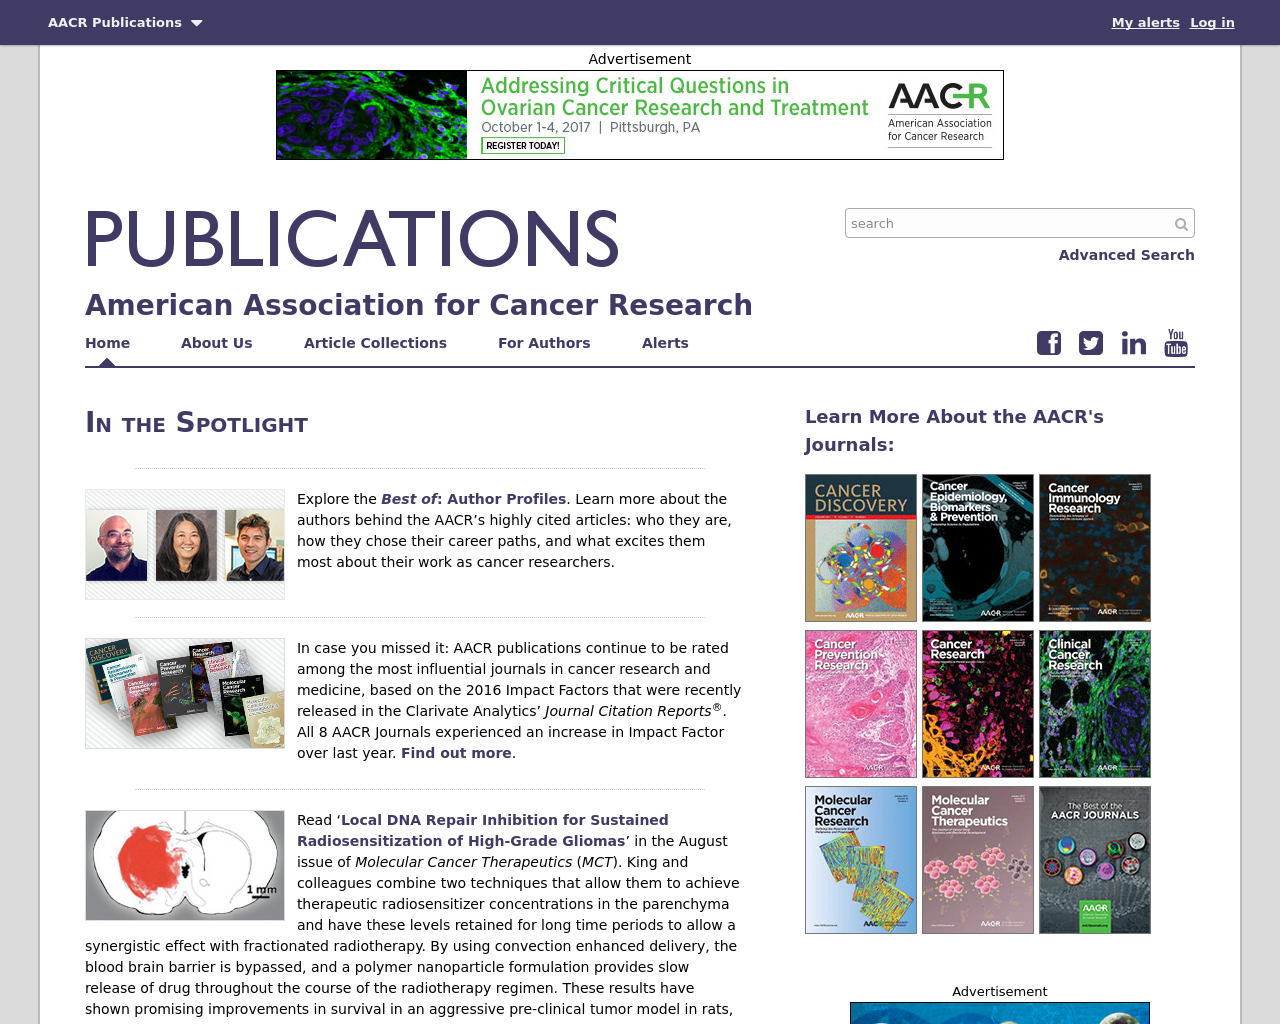 AACR-Publications-Advertising-Reviews-Pricing